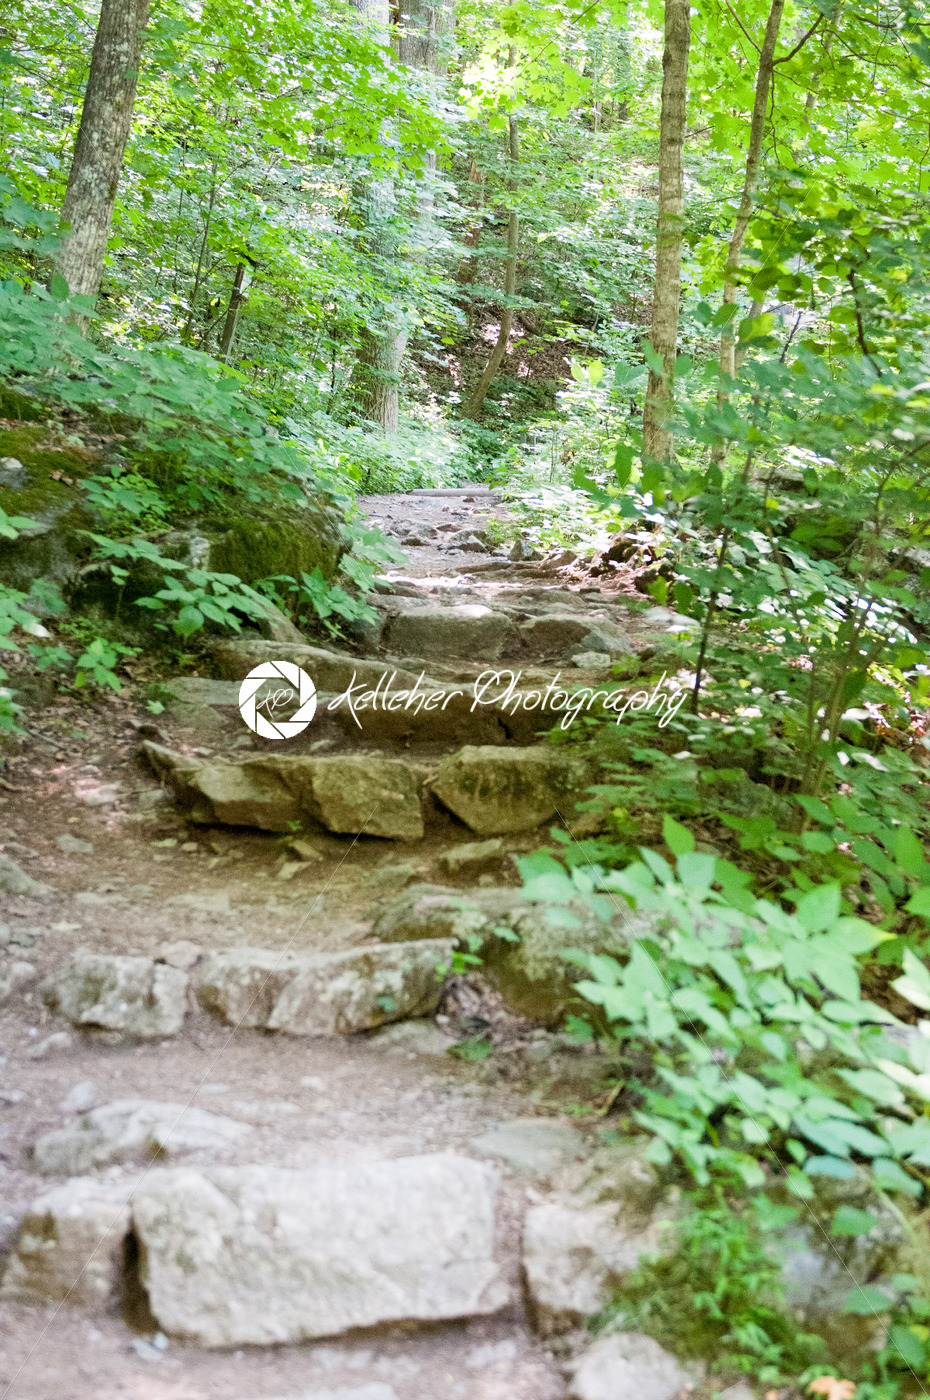 Rocky pathway steps at Crabtree Falls along the Blue Ridge Parkway near Asheville North Carolina - Kelleher Photography Store